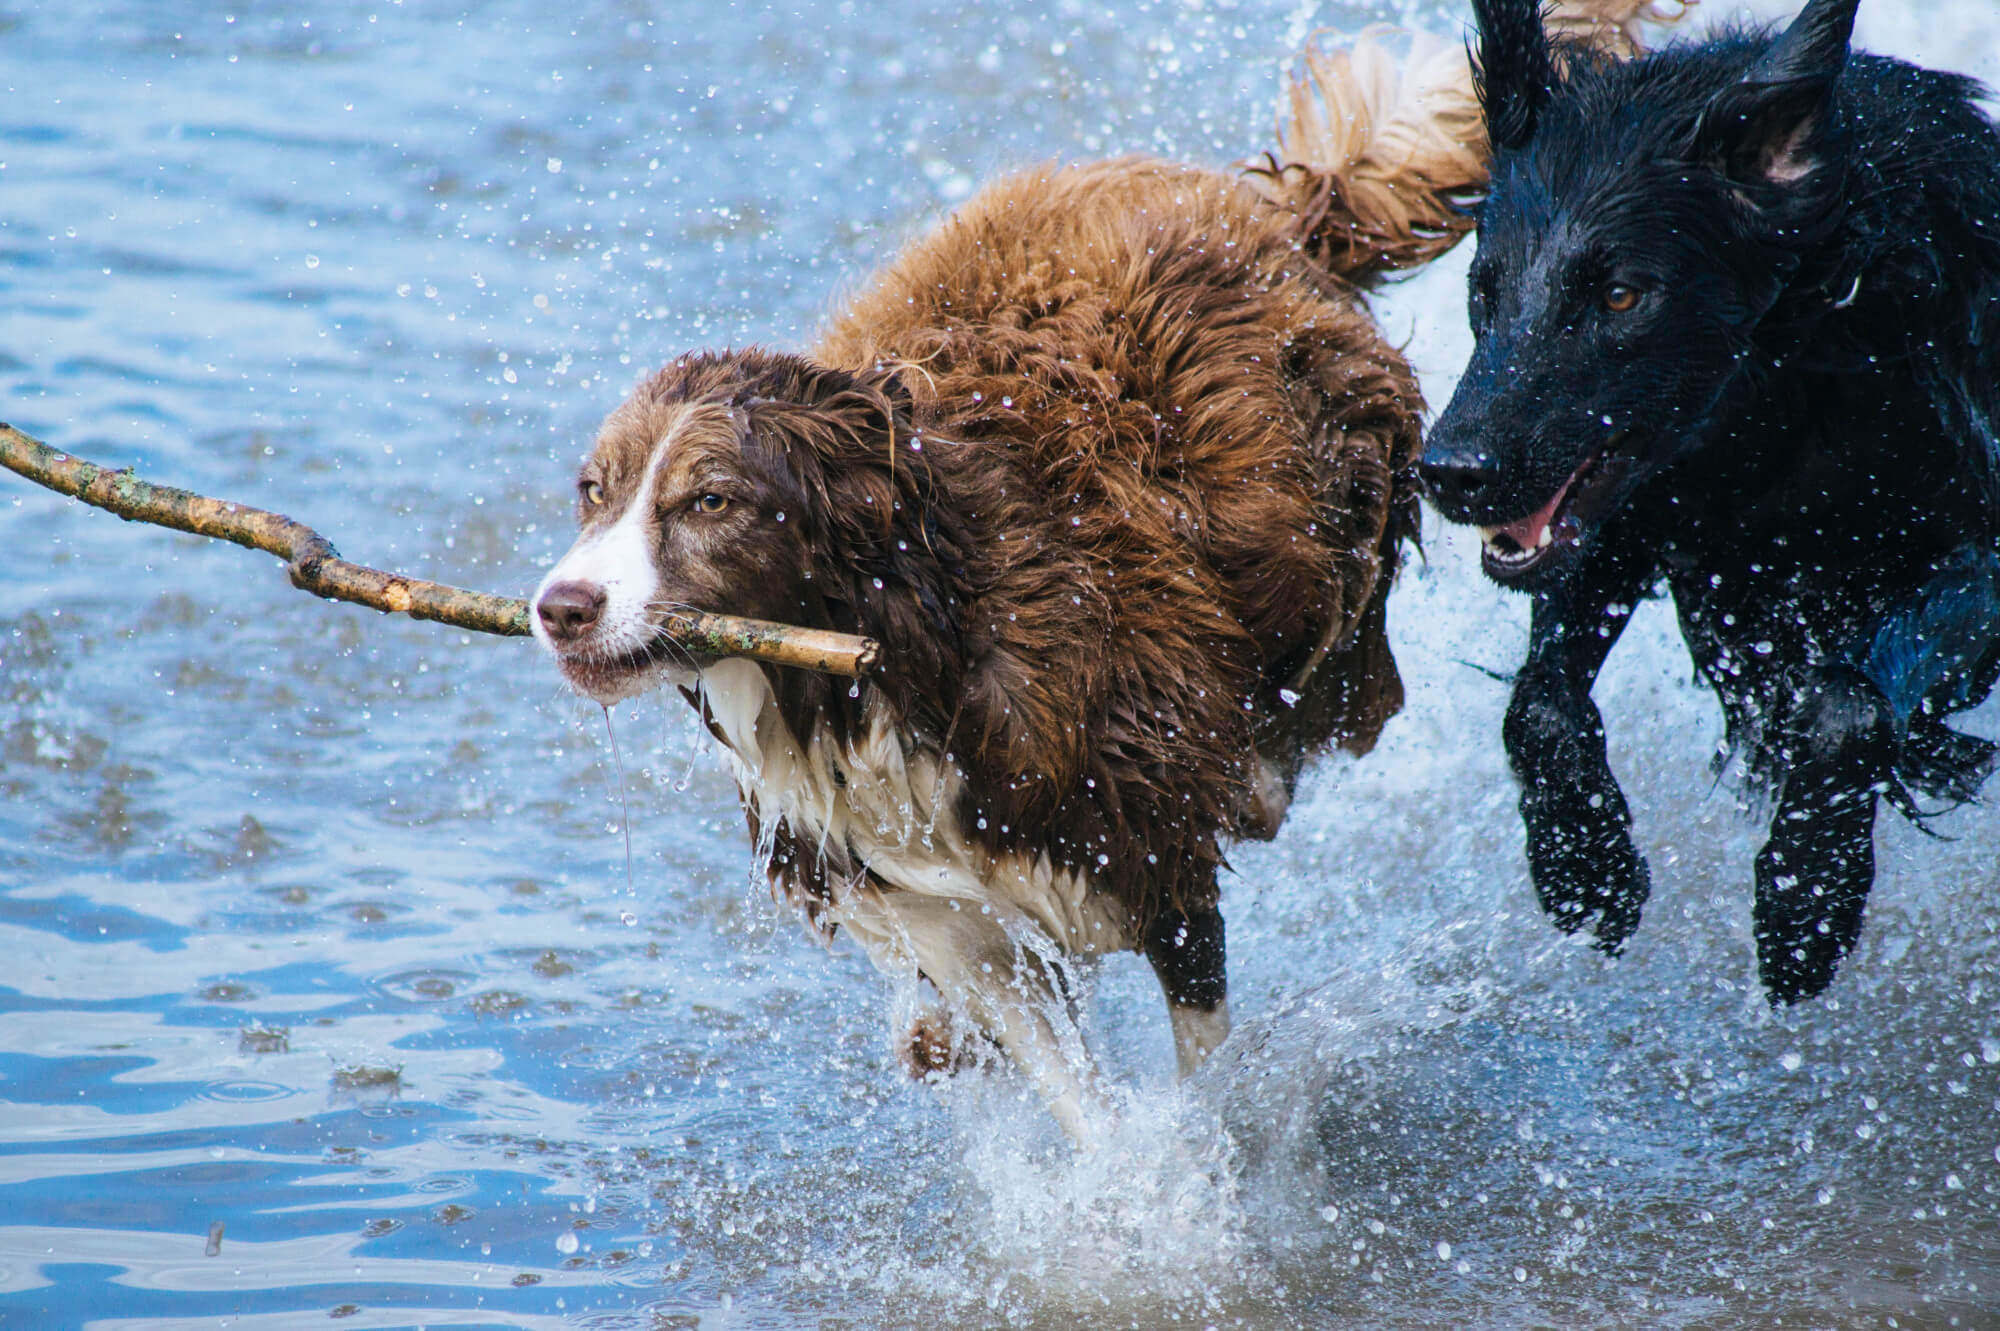 Dogs chasing each other with a stick